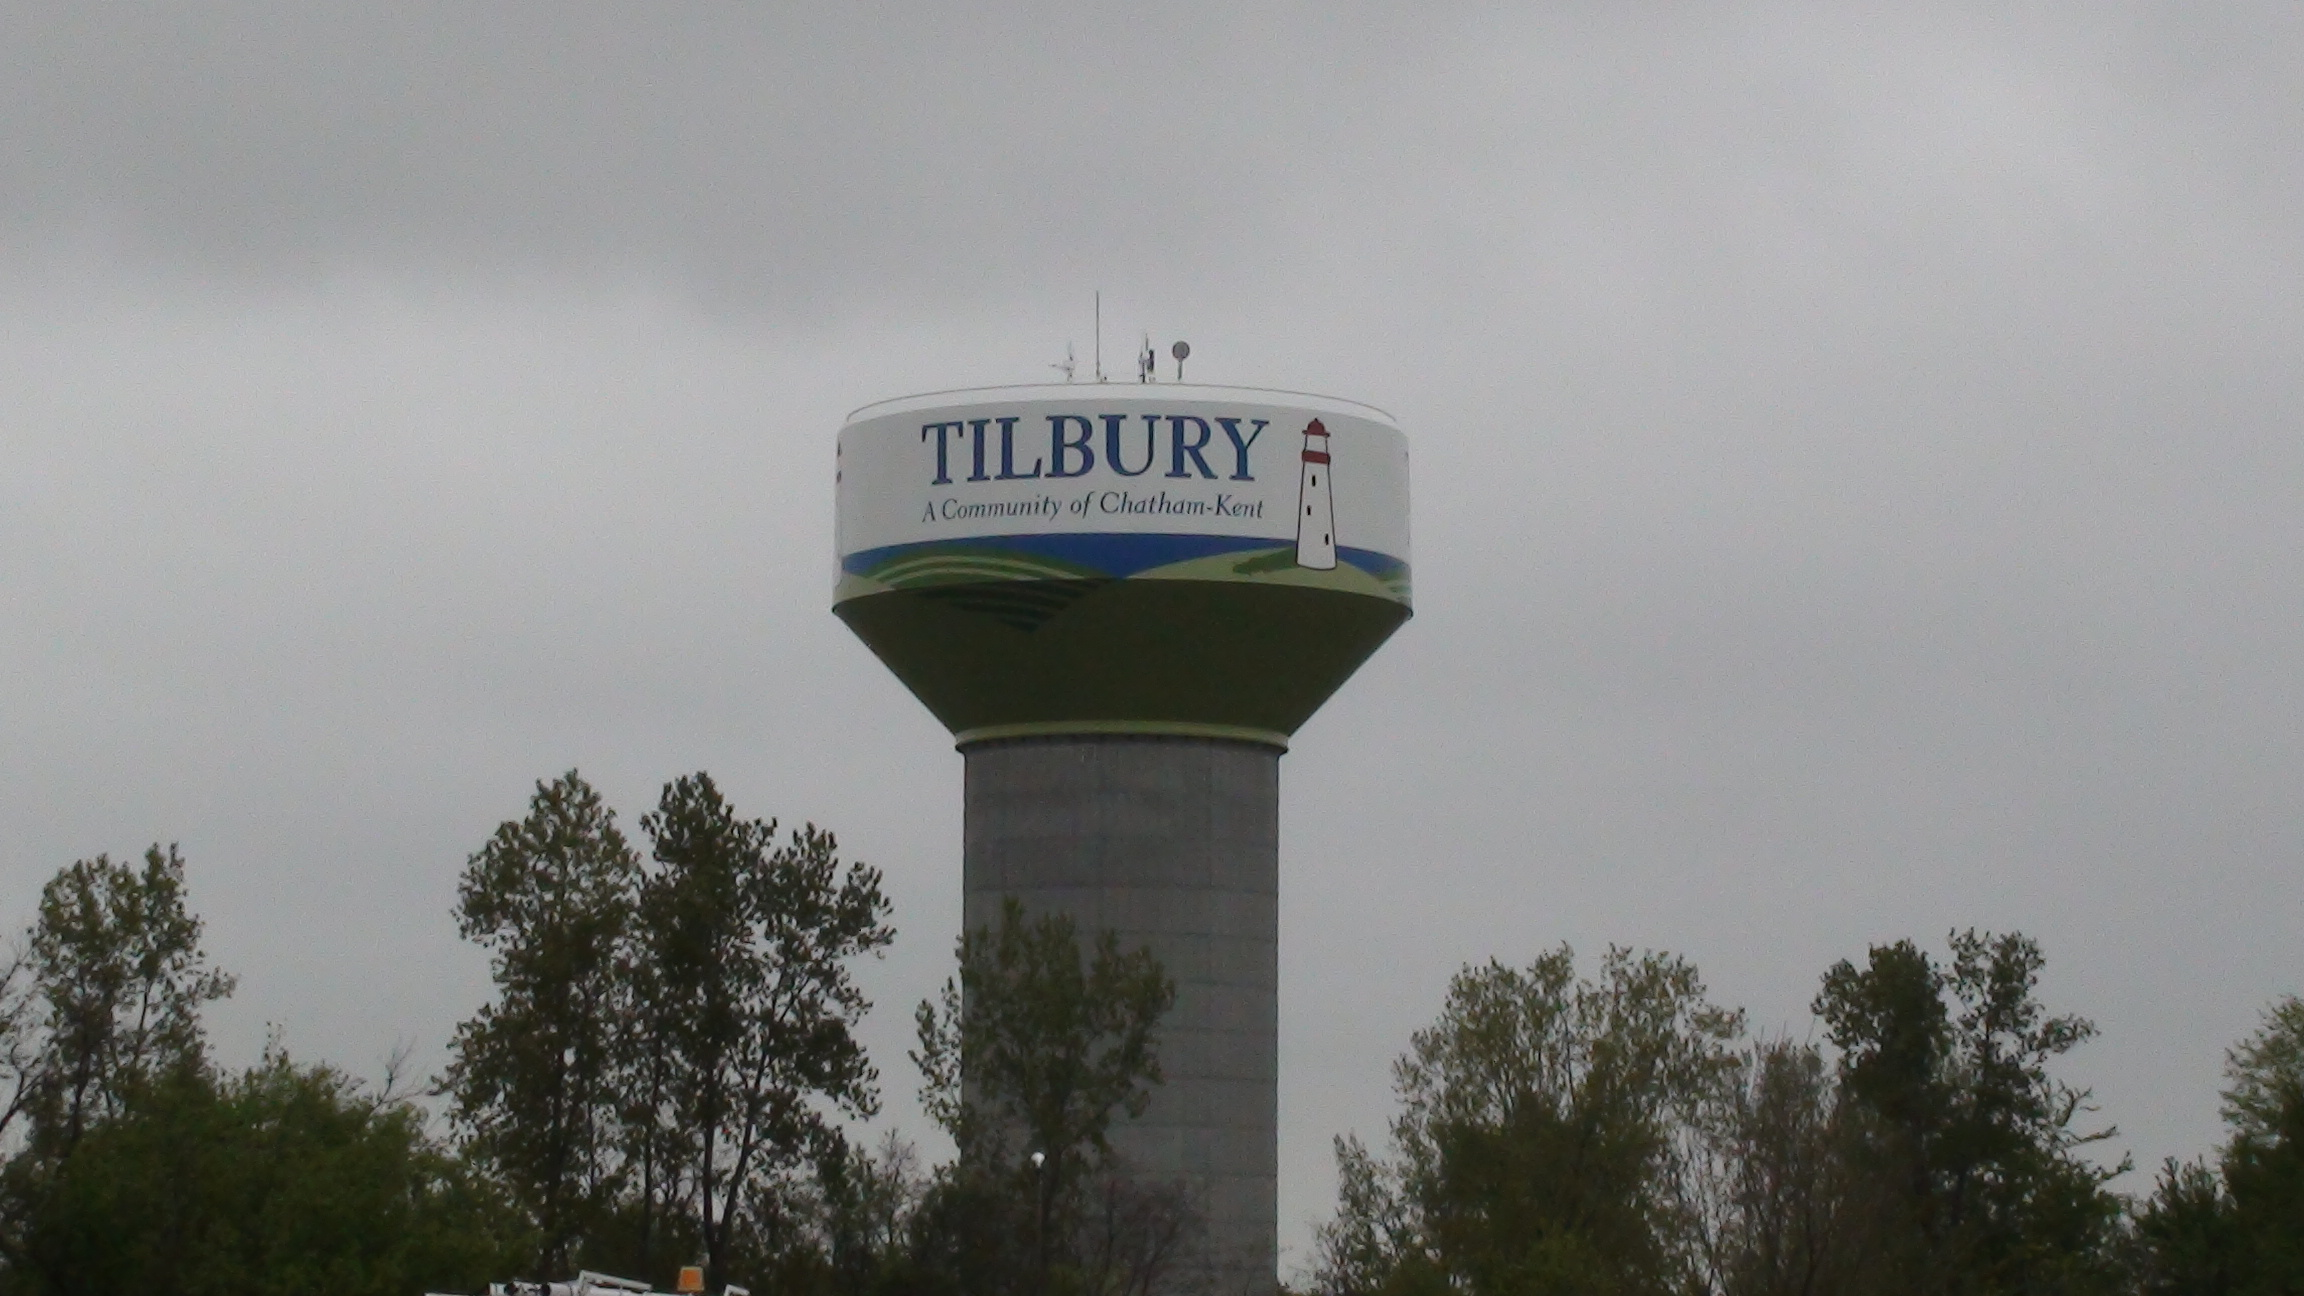 The Tilbury water tower. (BlackburnNews.com file photo by Dave Richie)